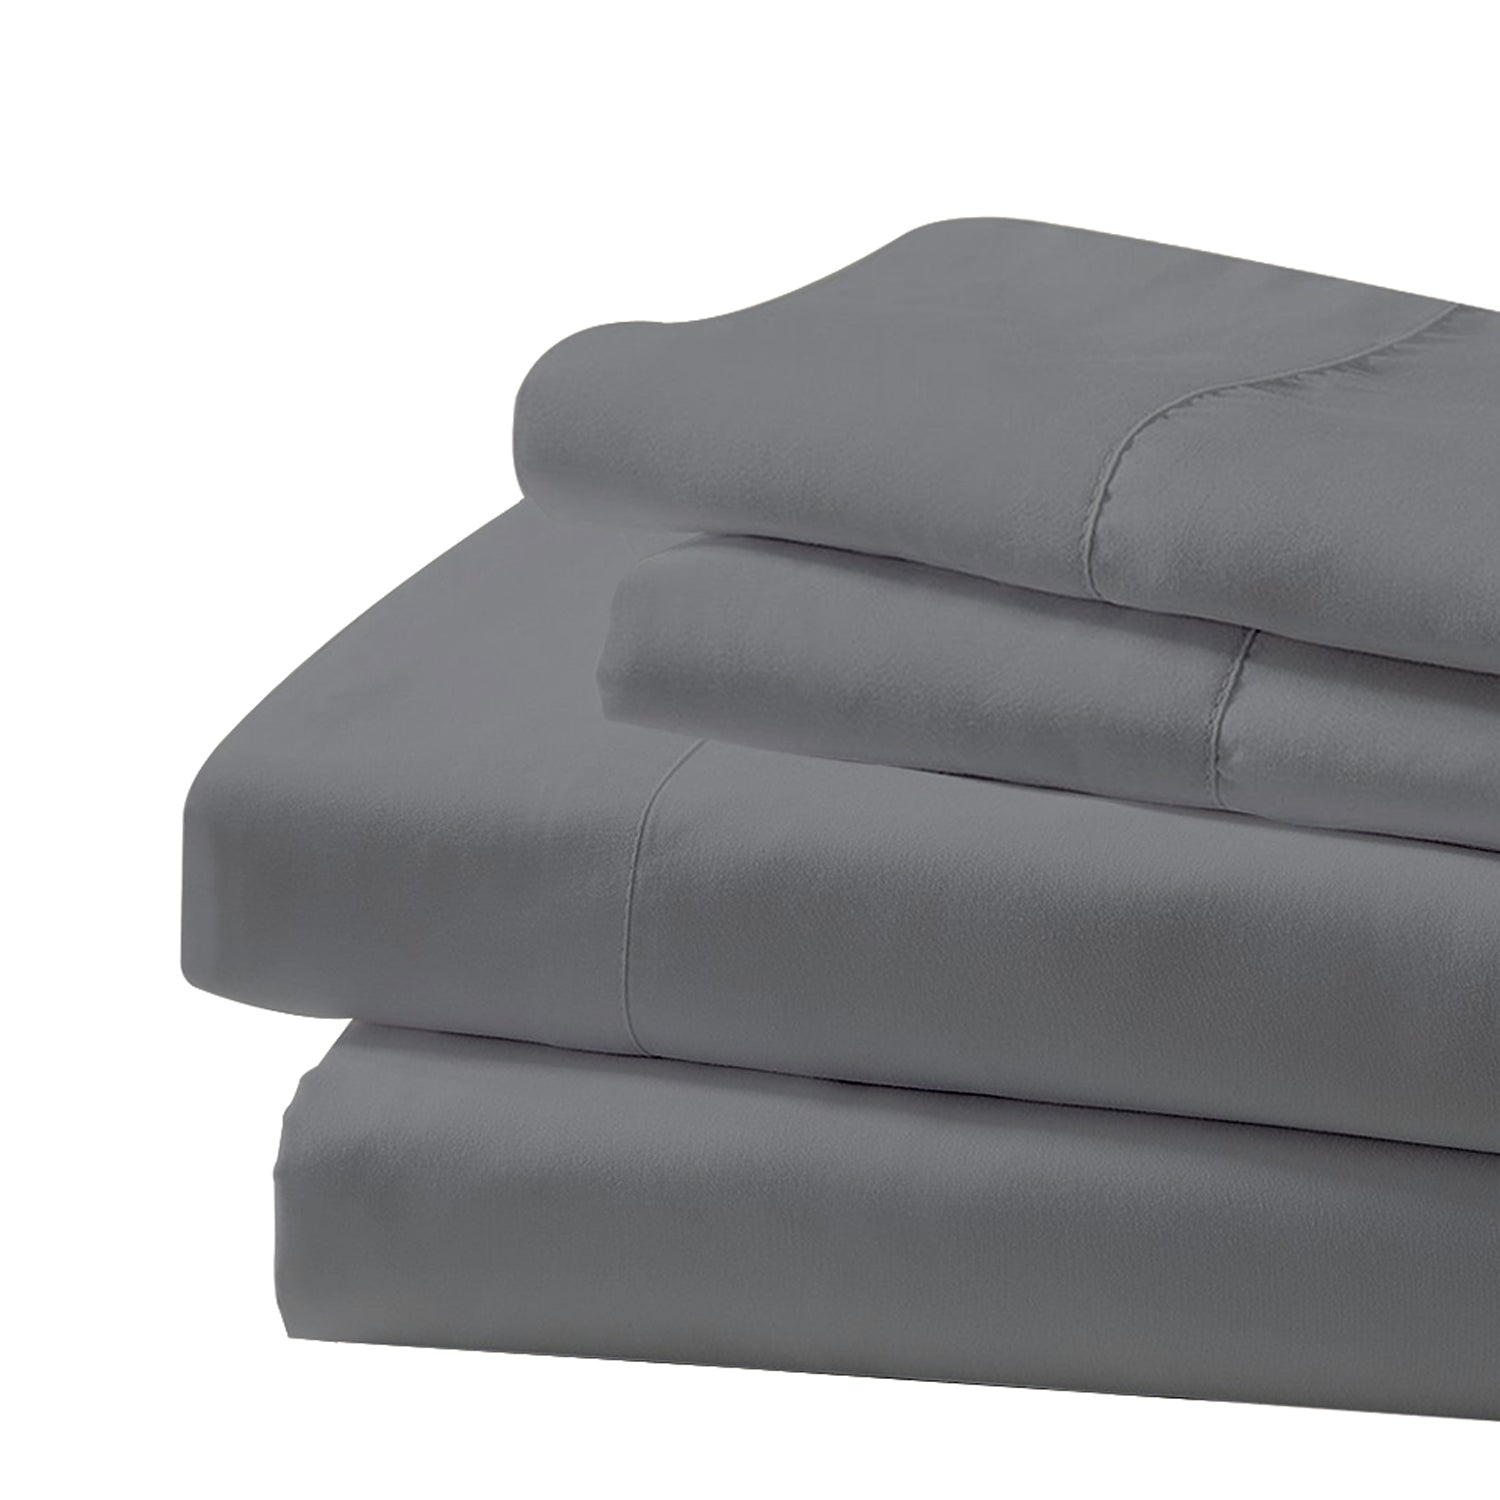 Galaxy Gray LUXURY Bed Sheet Set 3/4Pcs Soft Microfiber Fitted, Flat Sheet & Pillowcase Fits Mattress Up to 14'' Deep Pocket - Merrylife